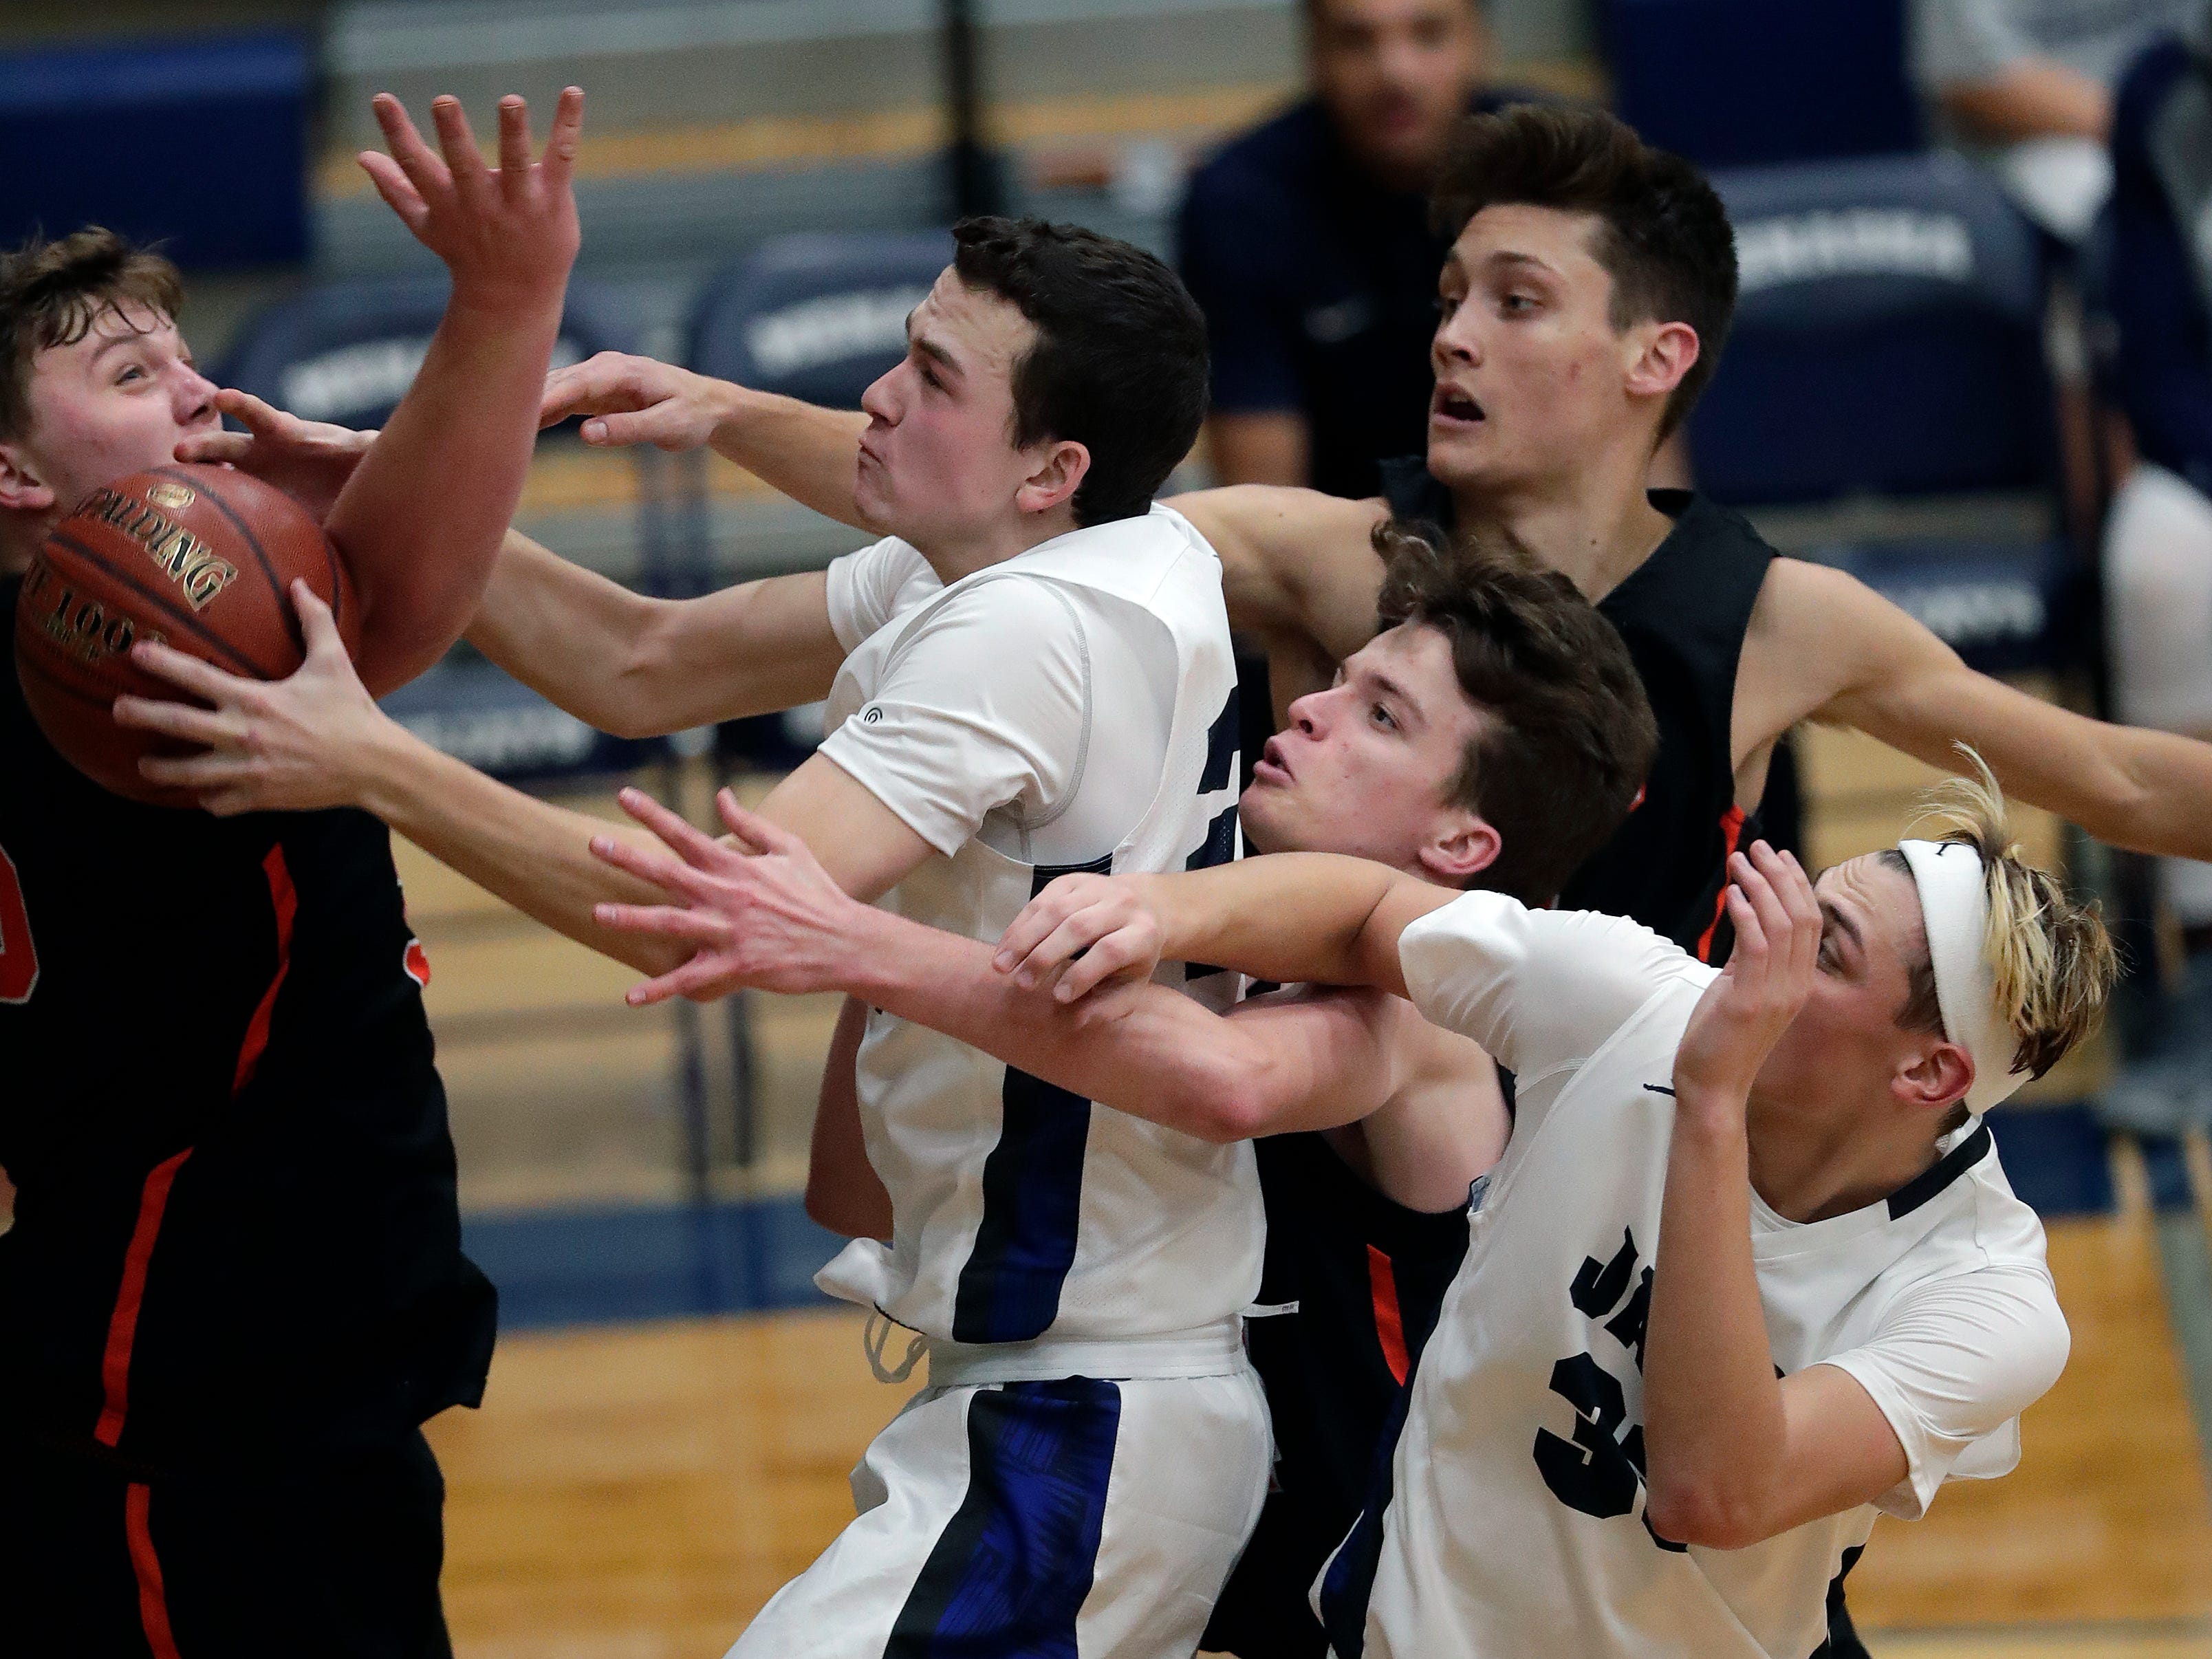 Menasha High School's Duncan Dotterweich, center, pulls down an offensive rebound against West De Pere High School defenders during their boys basketball game Tuesday, December 11, 2018, in Menasha, Wis. Dan Powers/USA TODAY NETWORK-Wisconsin